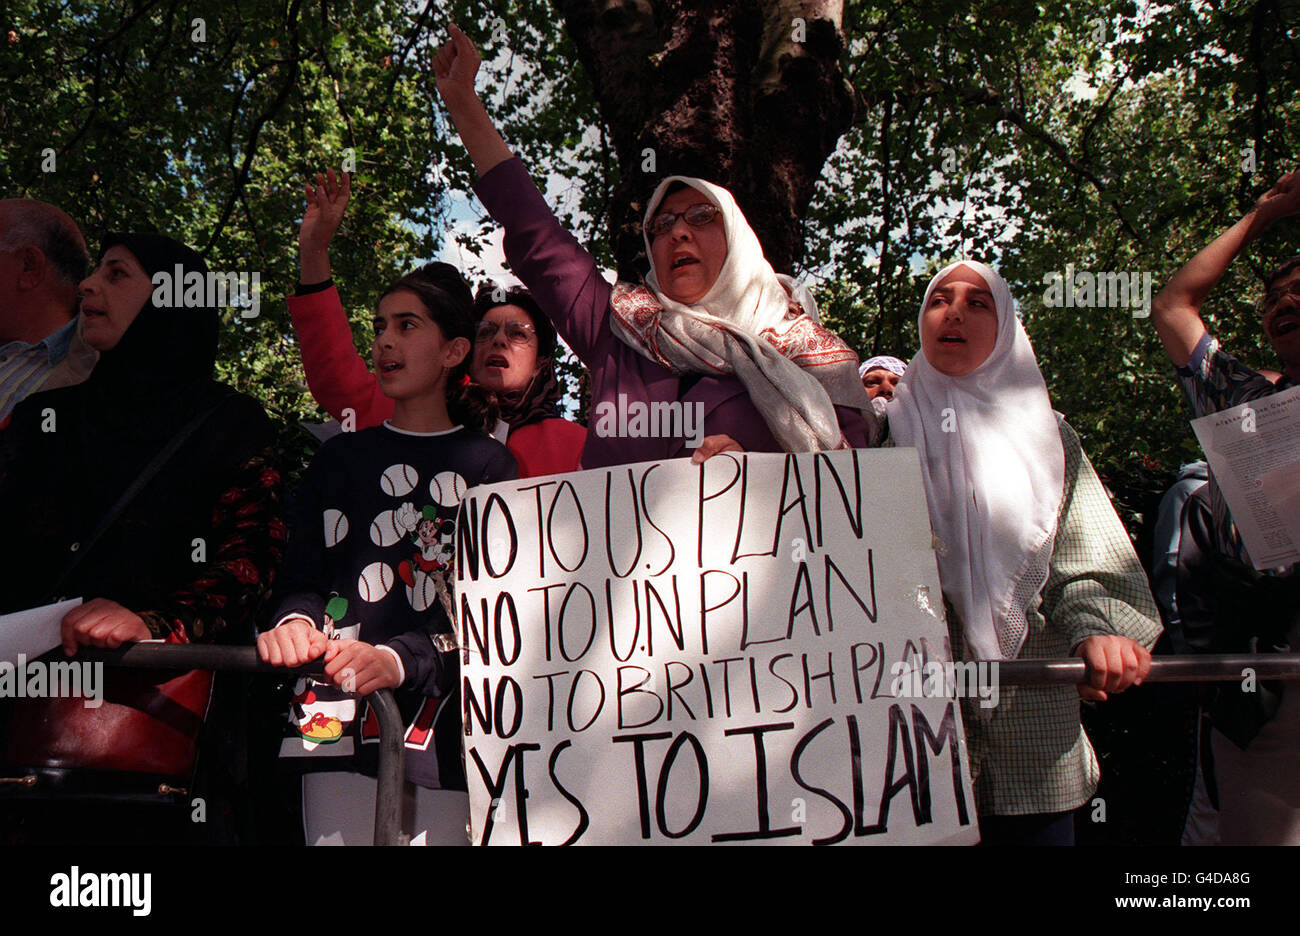 MUSLIM PROTESTORS US EMBASSY LONDON. - Stock Image